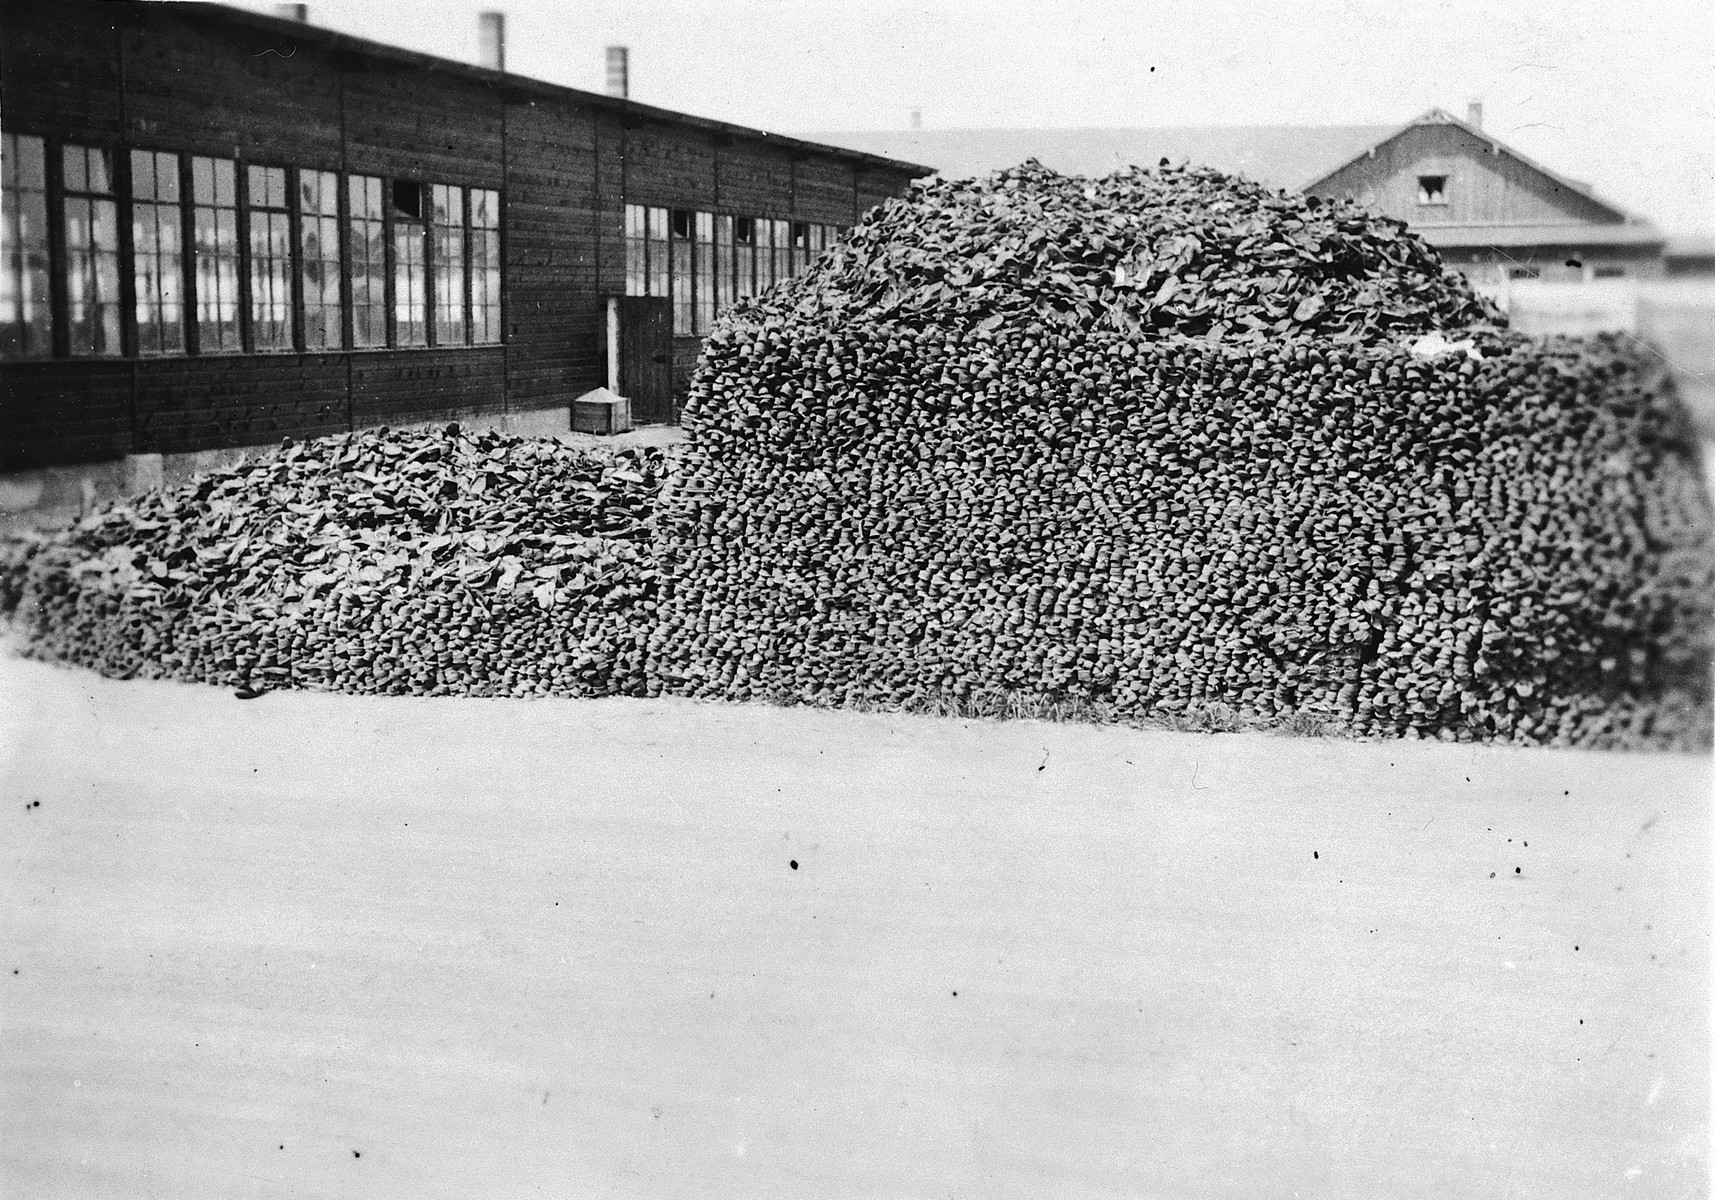 View of a large pile of victims' shoes piled up outside barracks in the Dachau concentration camp.